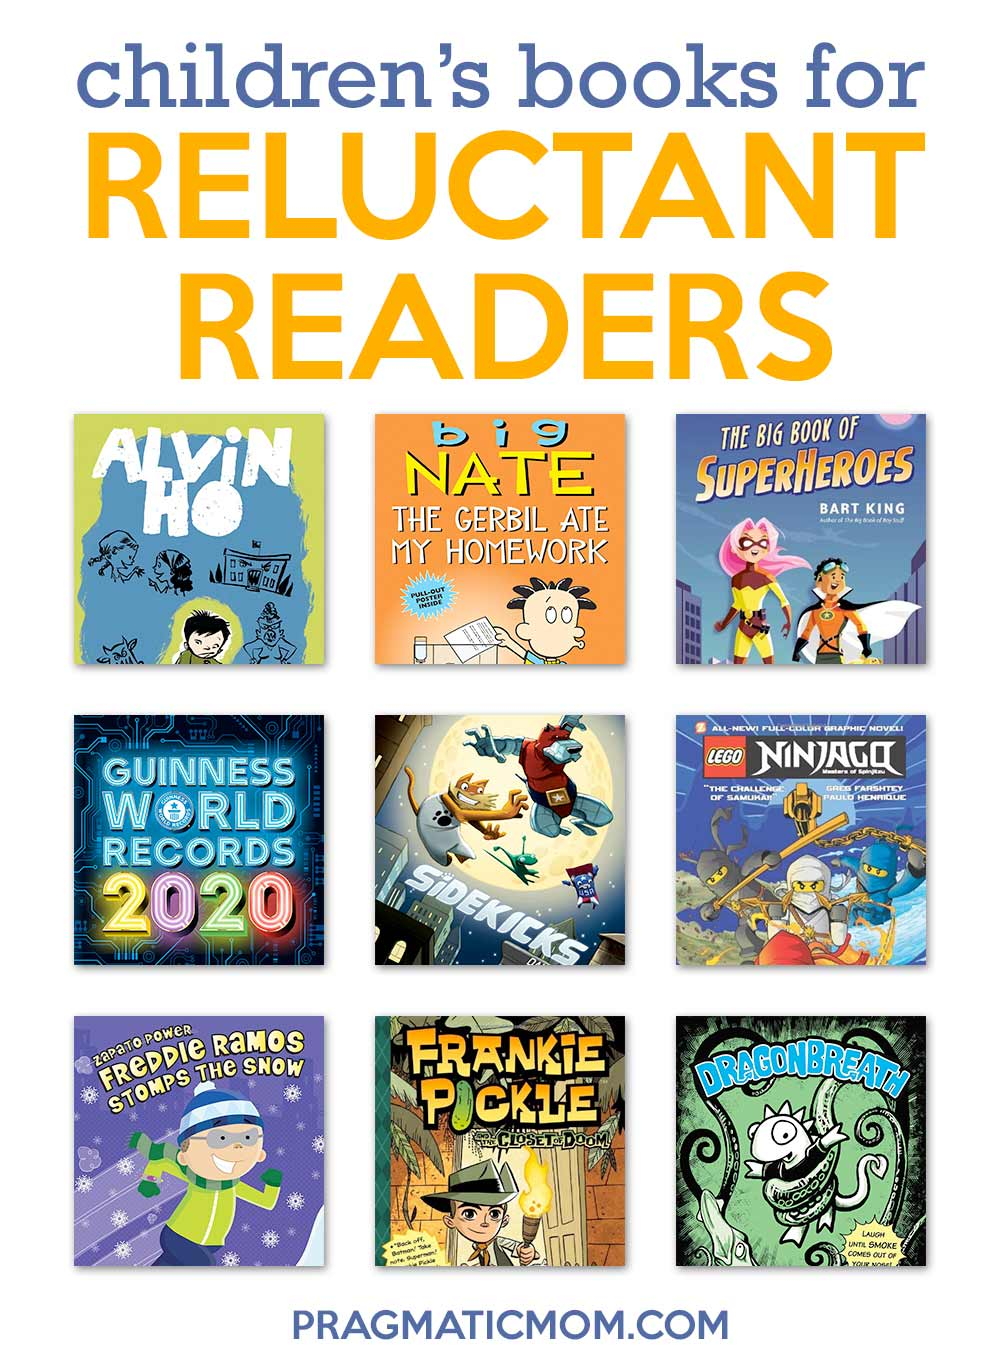 Children's Books for Reluctant Readers